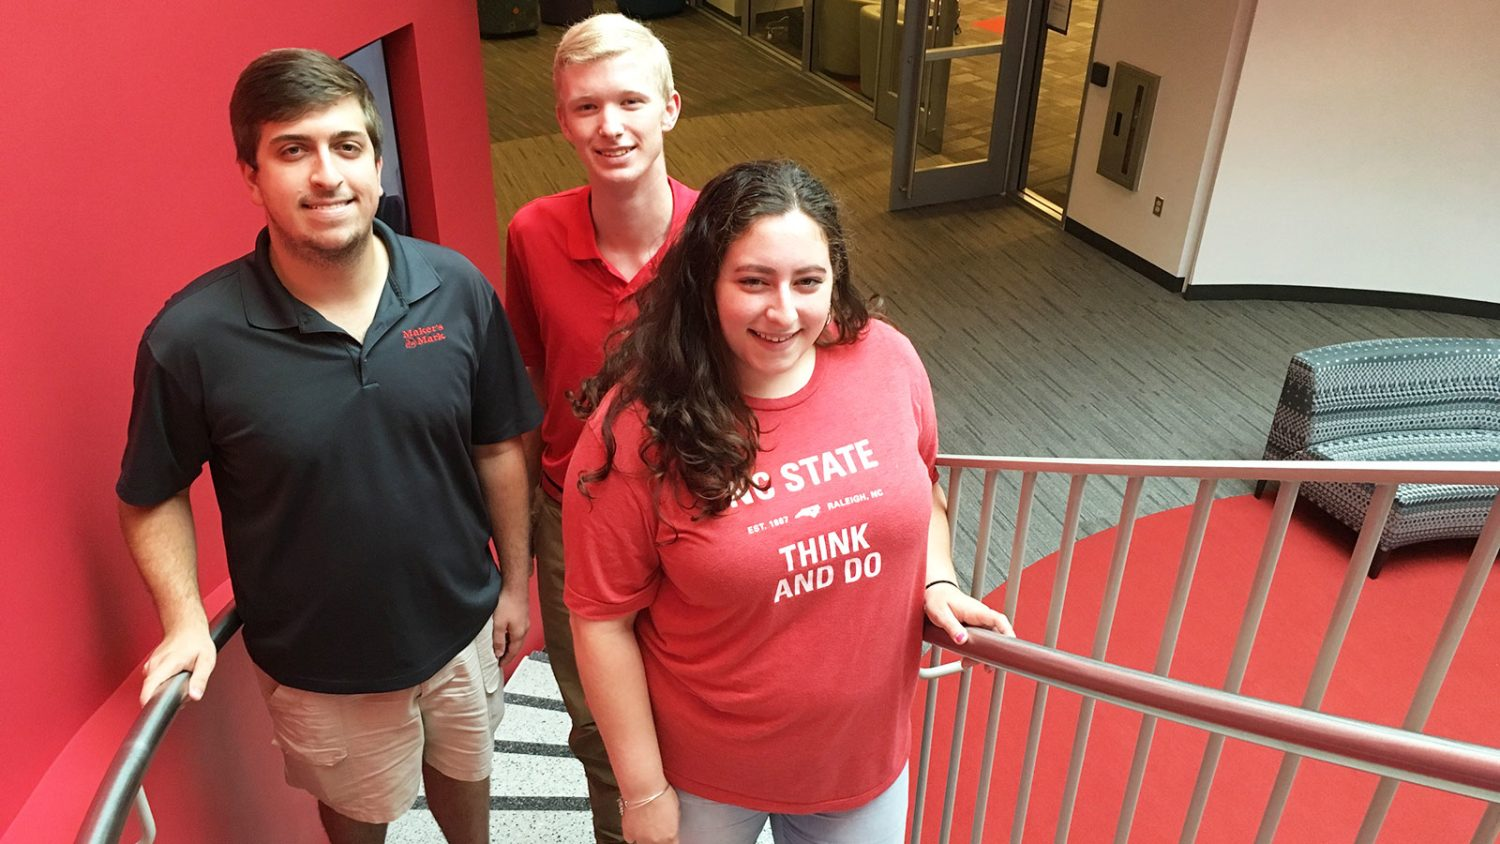 CALS students Harrison Walker, Luke Stancil and Victoria Pender standing on steps